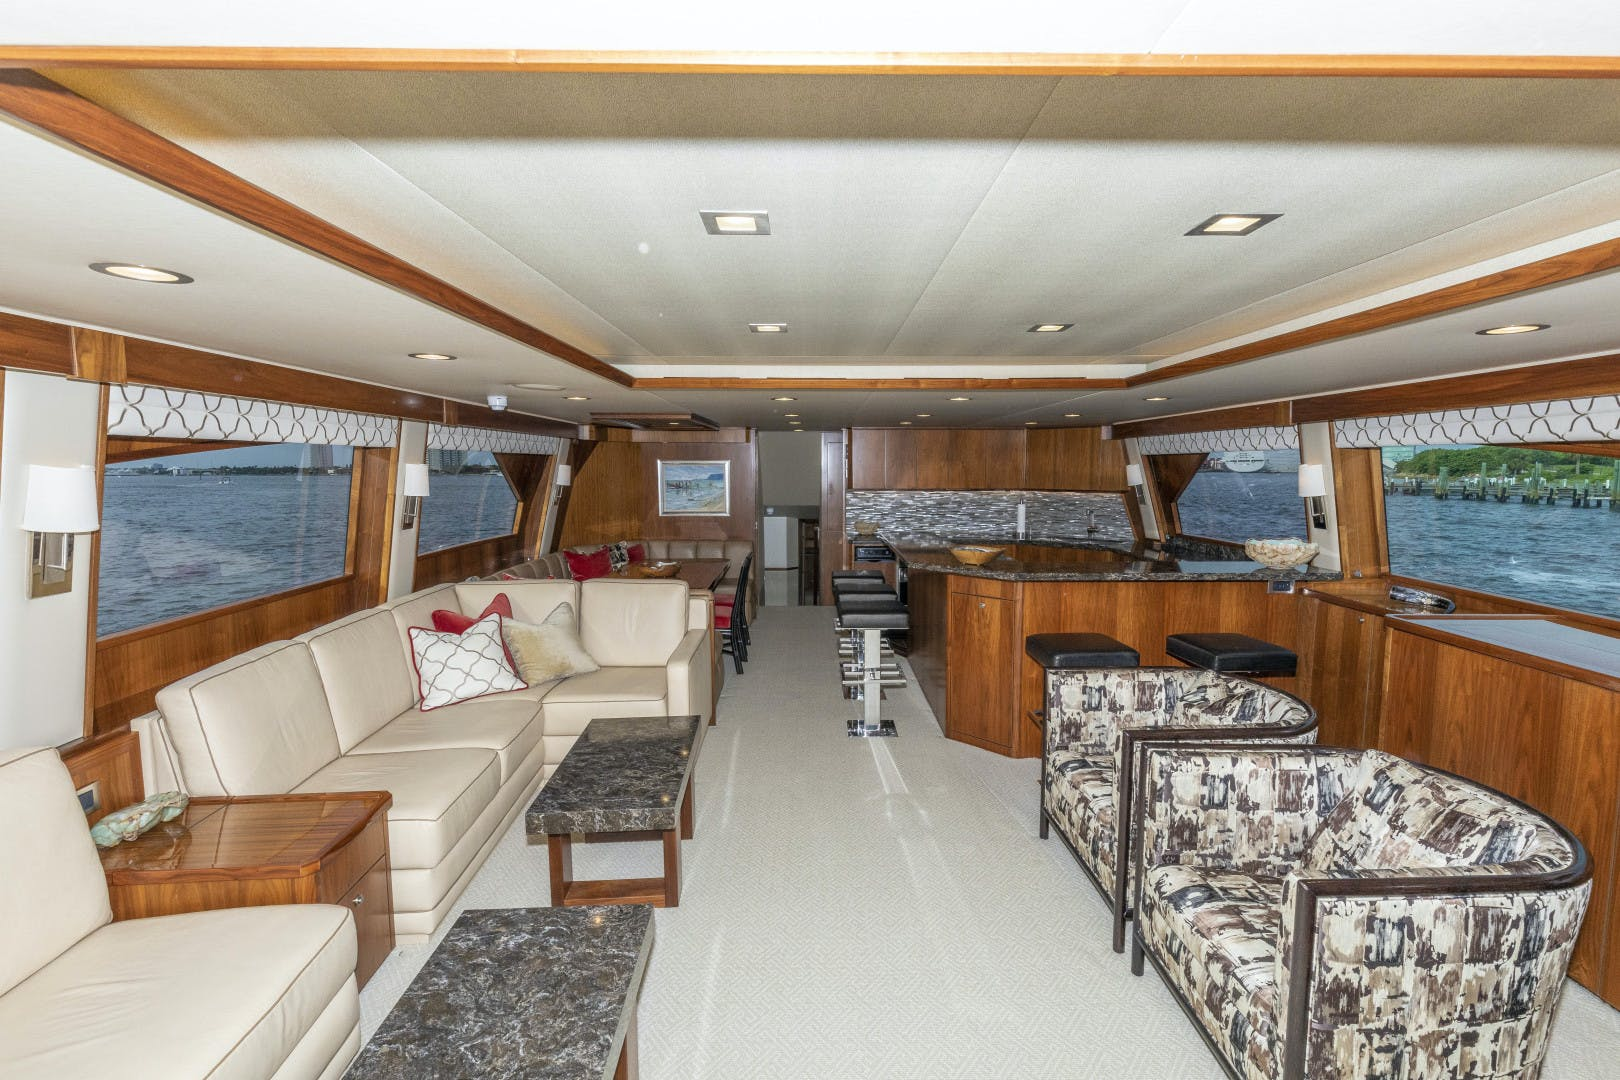 2016 Viking 92' Enclosed Bridge Sportfish Fa La Me | Picture 7 of 103